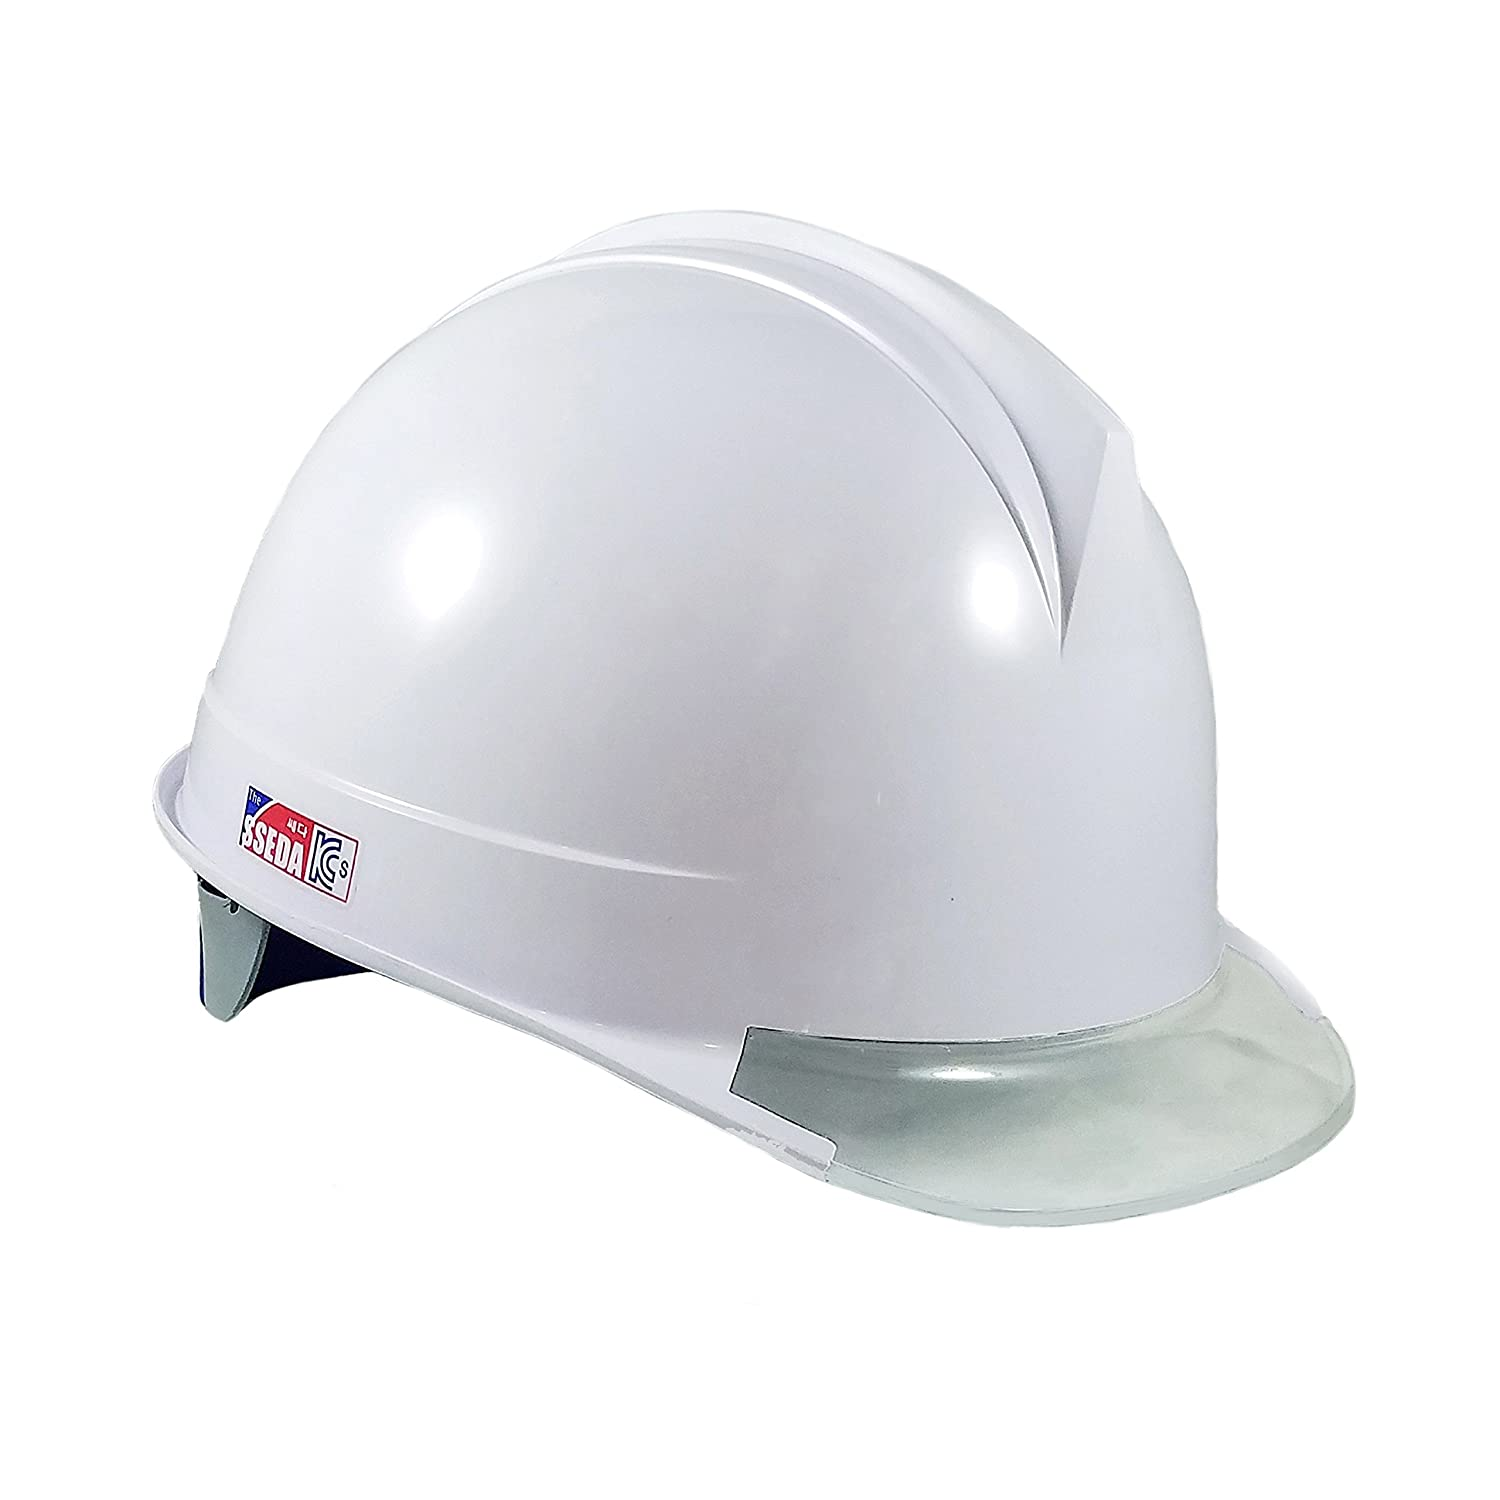 0dfd6d71ff7 Construction safety hard hat sseda with clear visor for greater jpg  1500x1500 Hard hat with visor